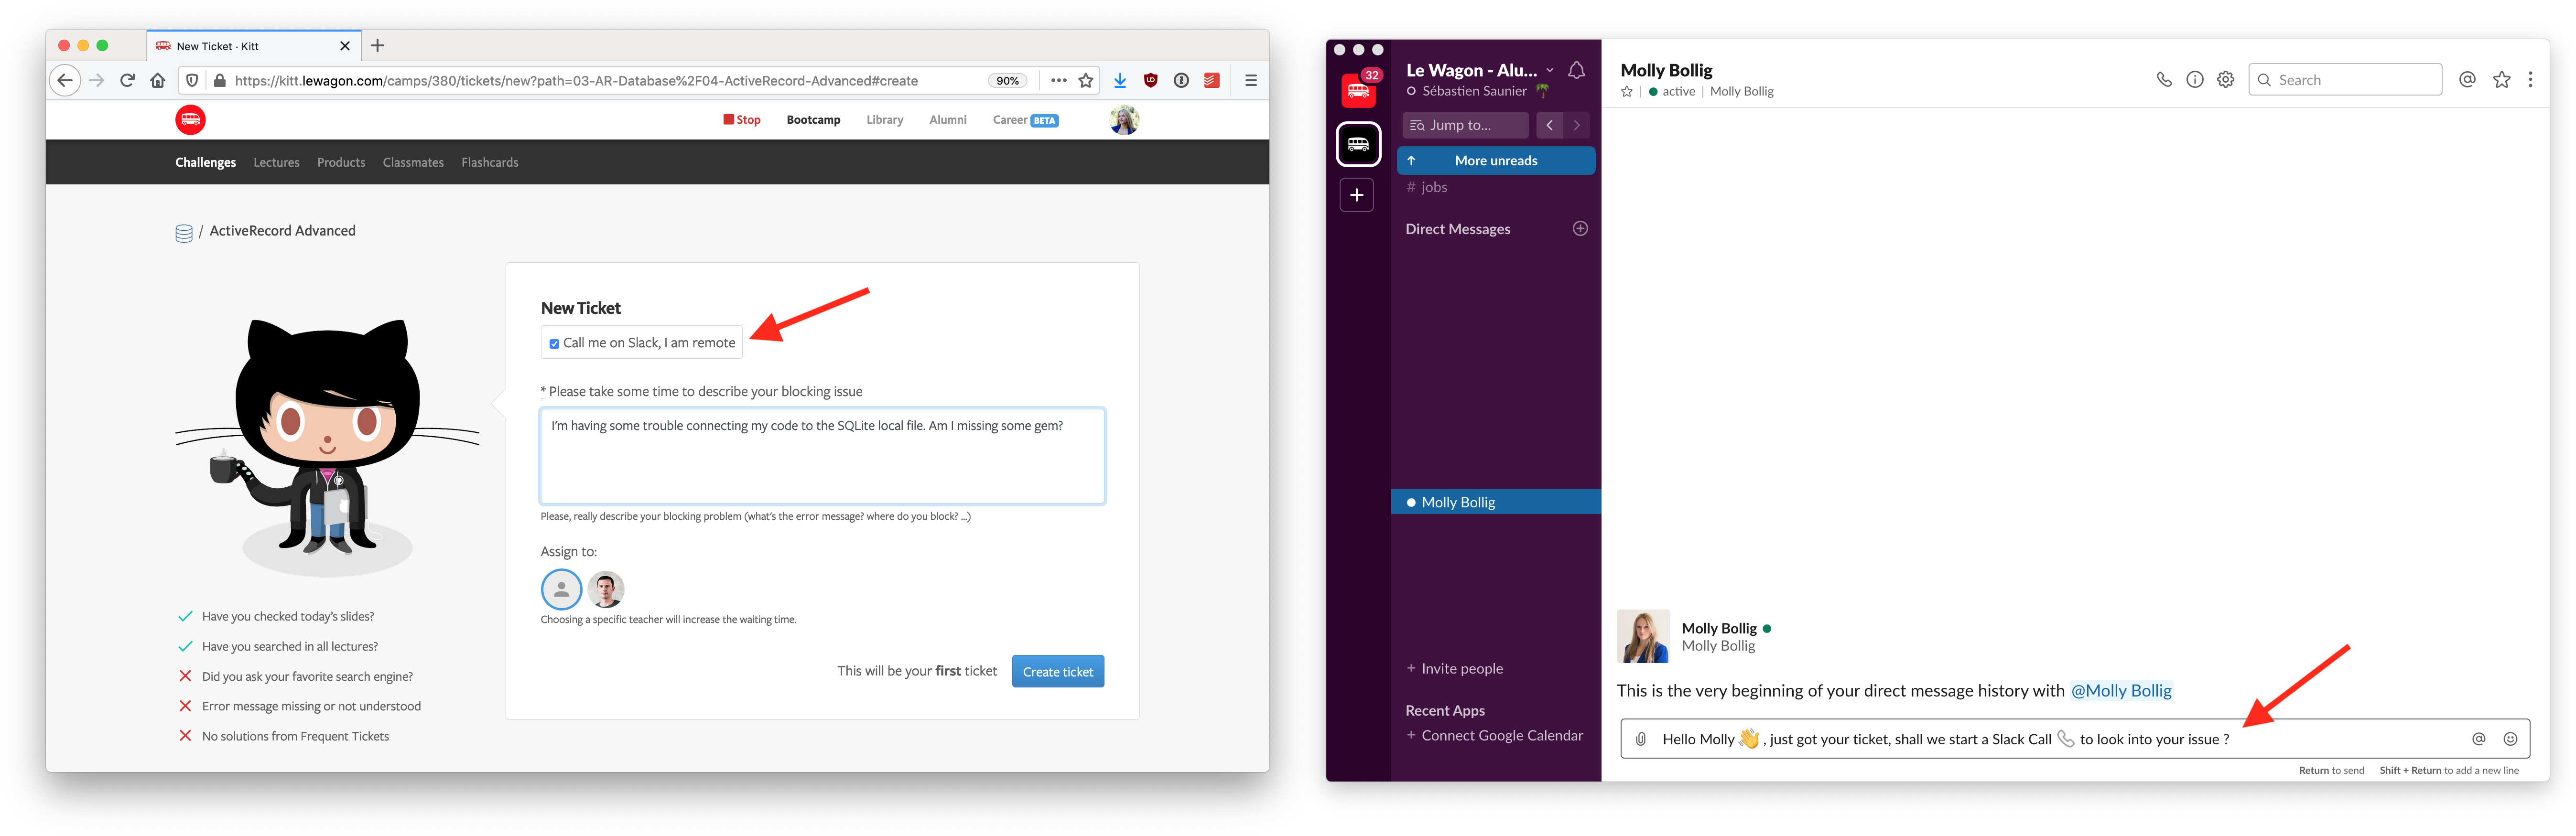 Le Wagon provides 1:1 support via video calls on Slack at all times